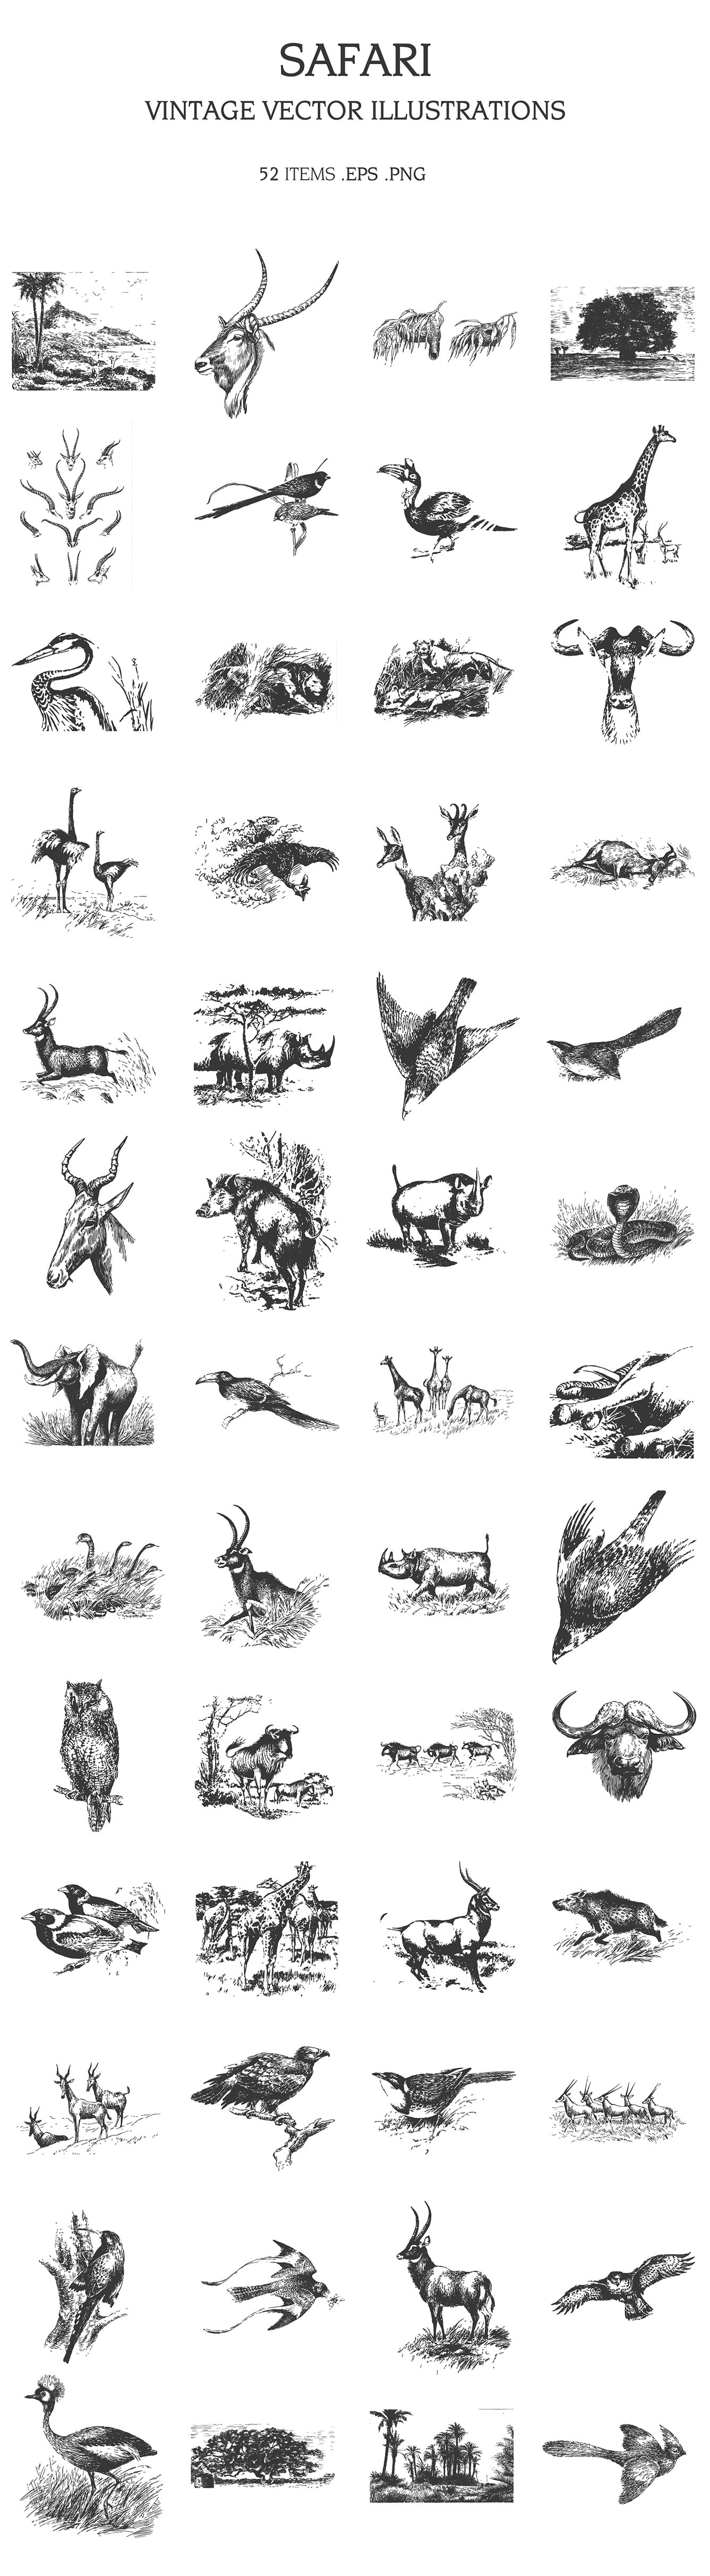 Part of the animal world drawn in black pencil.